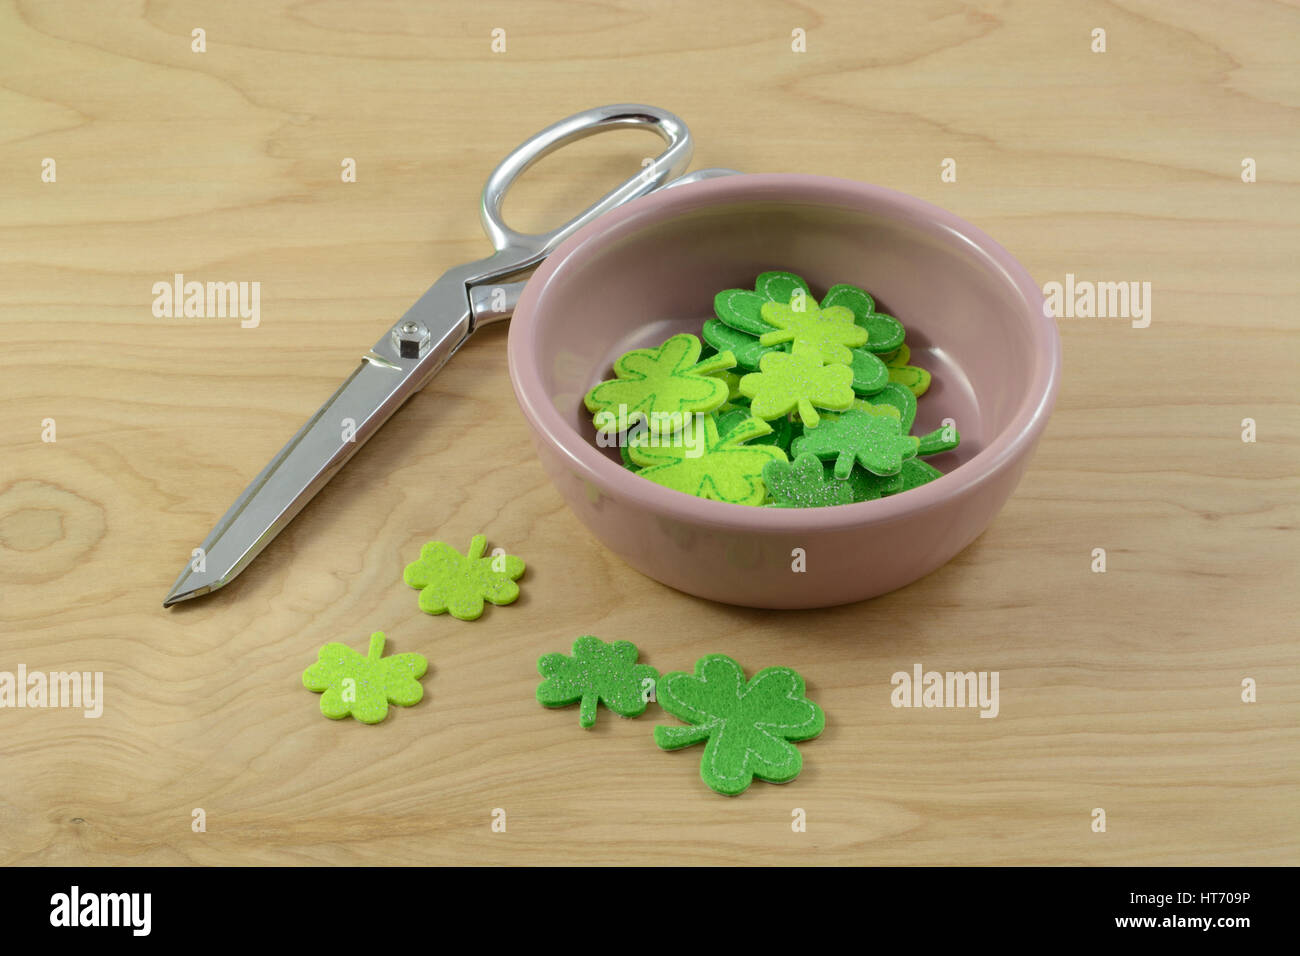 Saint Patrick's Day crafting project with green felt shamrocks and scissors  Save Download Preview Saint Patrick's - Stock Image